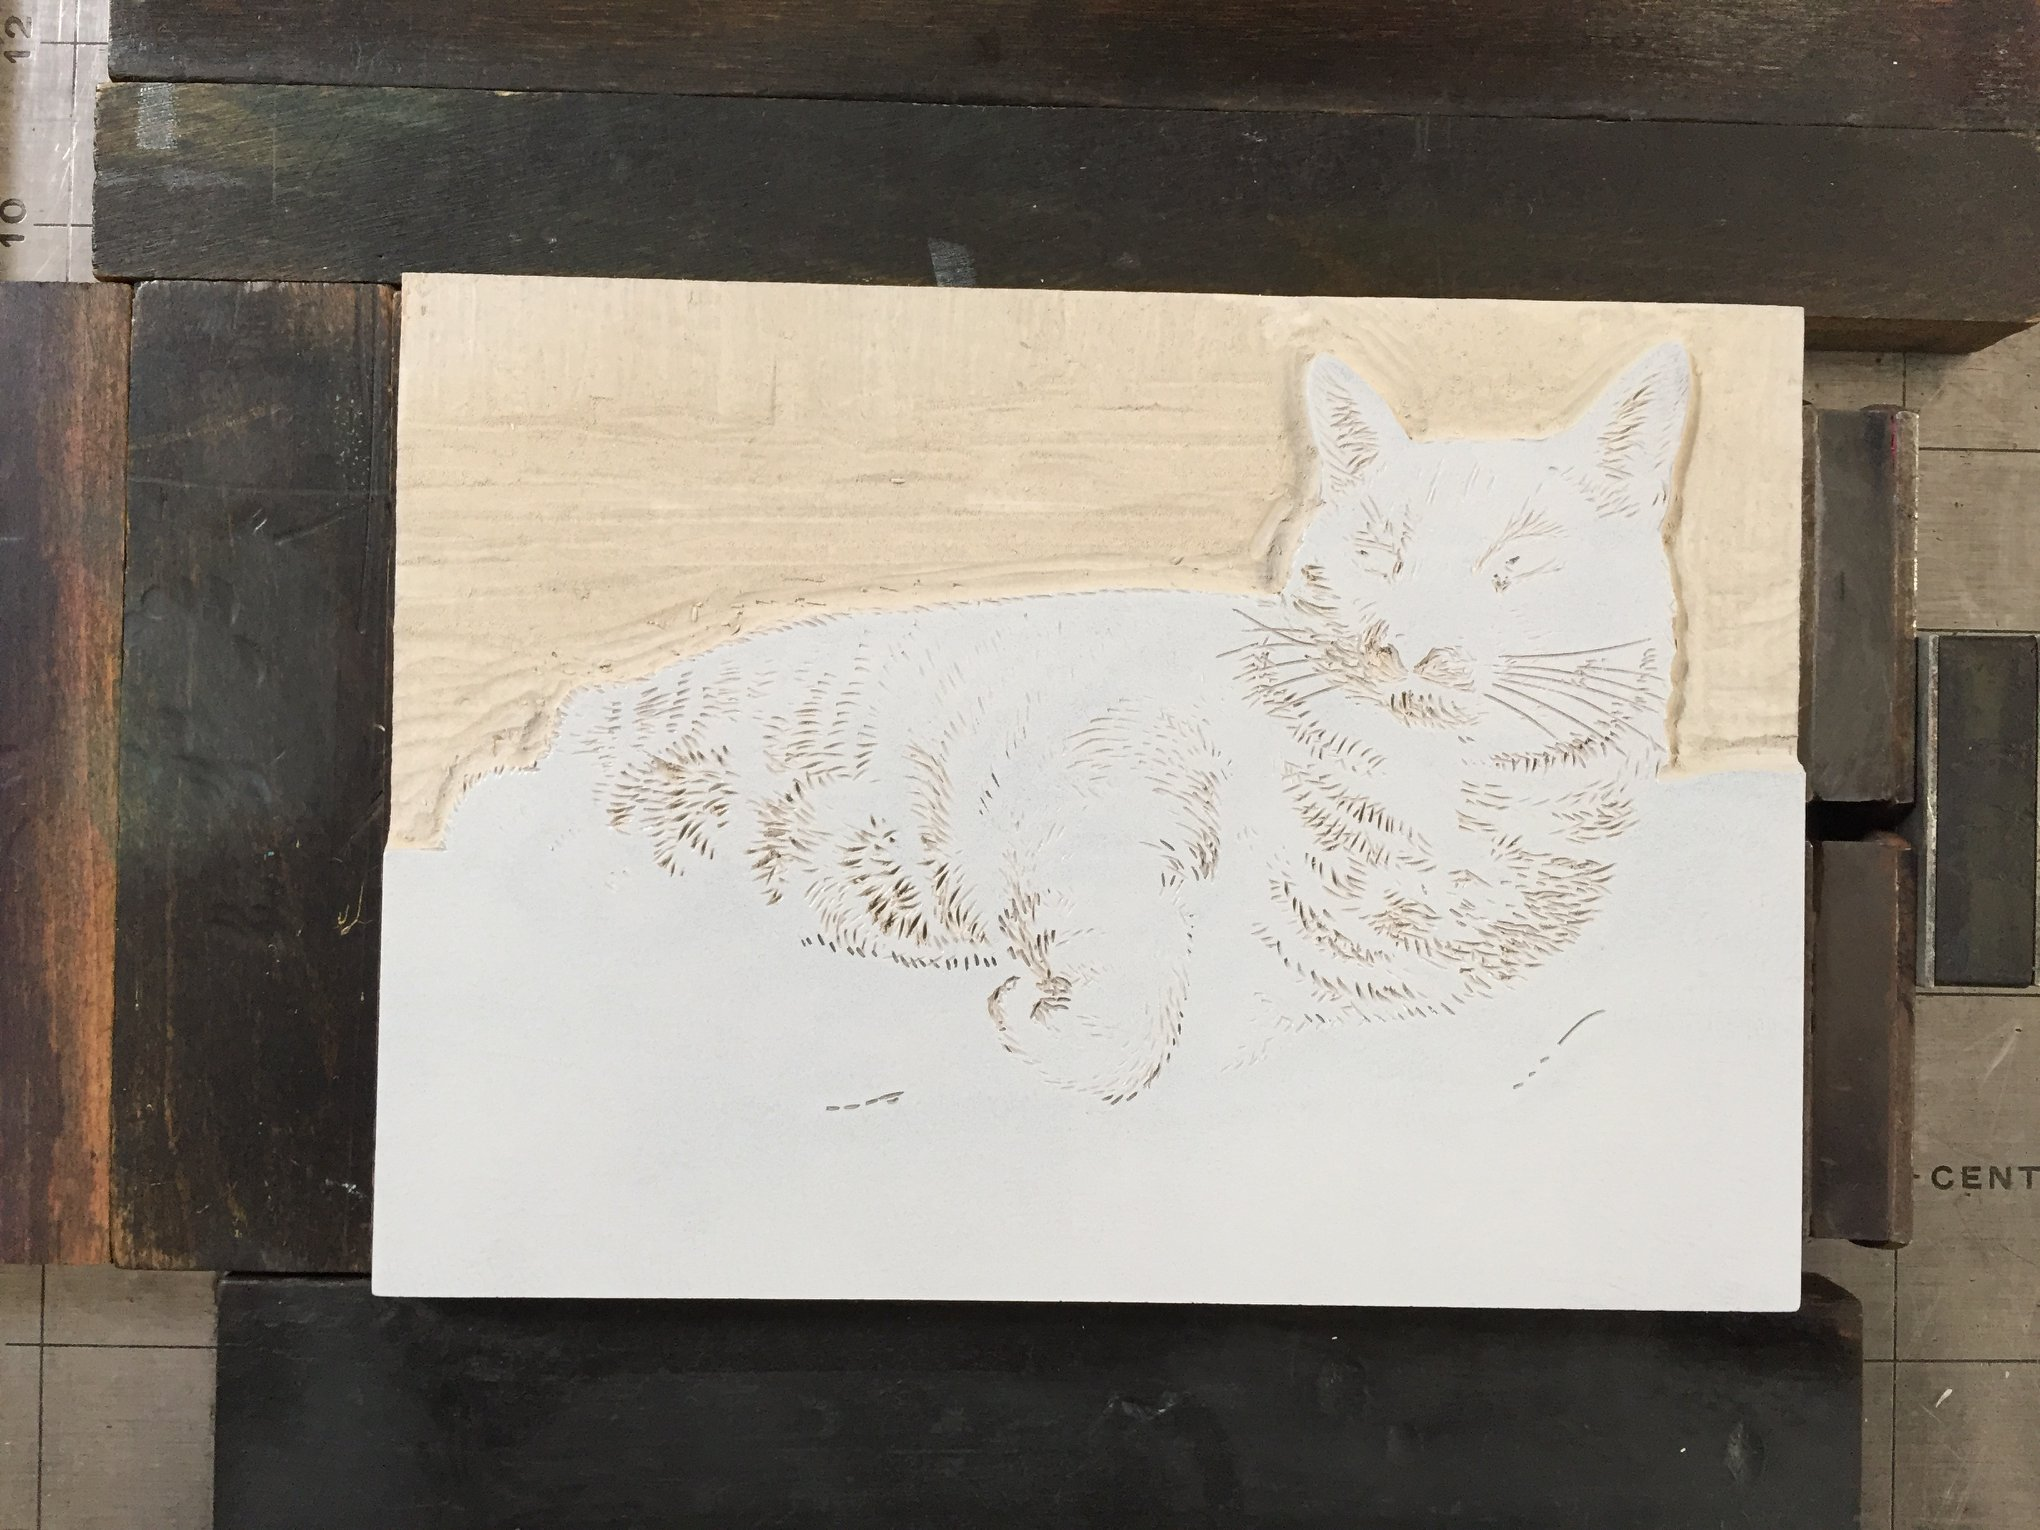 Here is the block carved, inked, and locked up in the press, ready for printing the third color. At this stage, I have carved away the background wall behind Sliver. I have expanded the light parts of the fur. The ink has a slightly darker value of grey mixed into it.